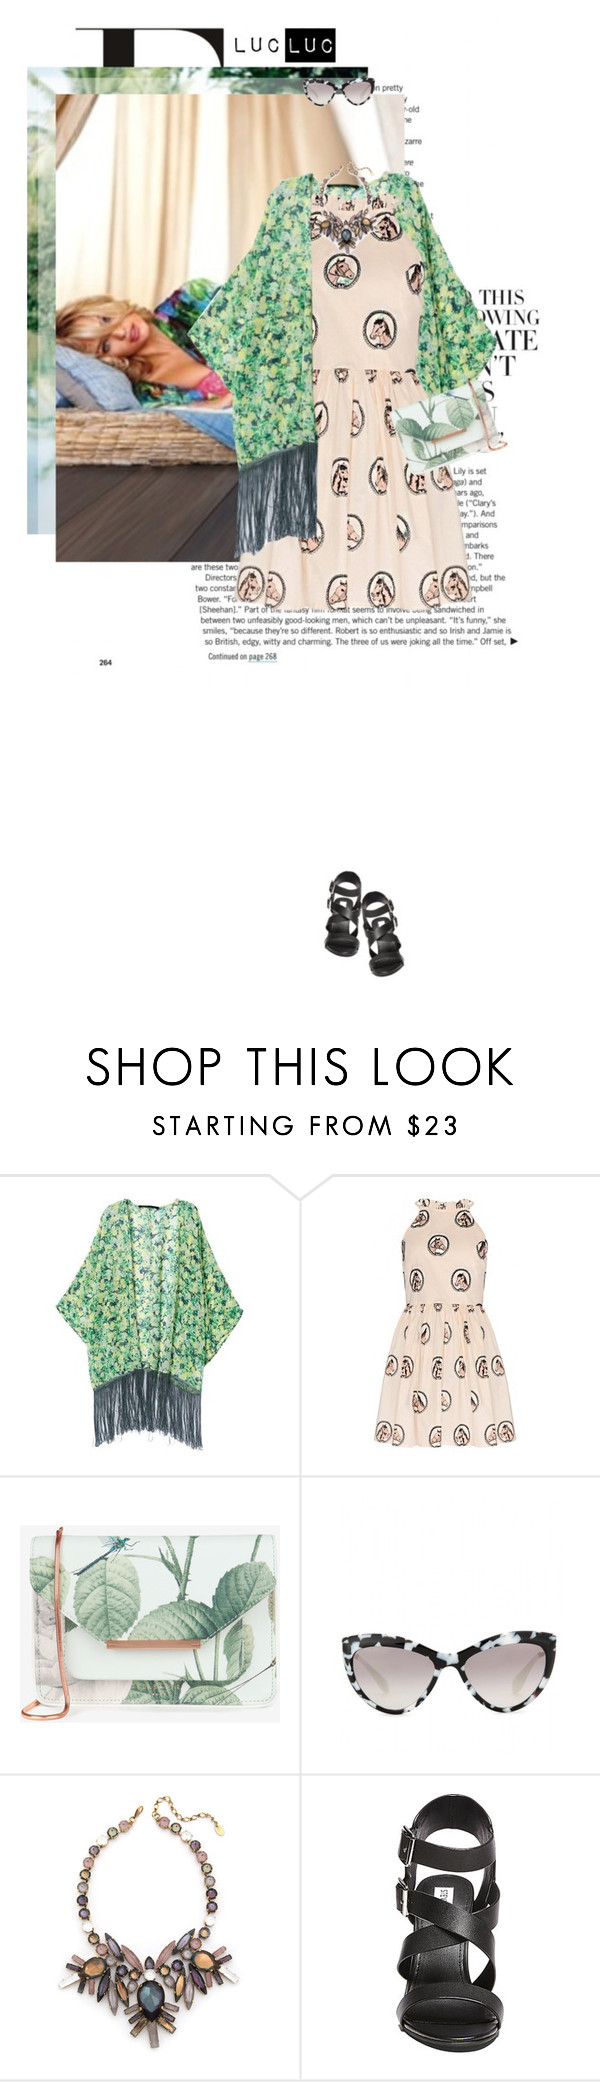 """""""Mix patterns"""" by lady-ss ❤ liked on Polyvore featuring Retrò, Ted Baker, Miu Miu, Erickson Beamon and Steve Madden"""